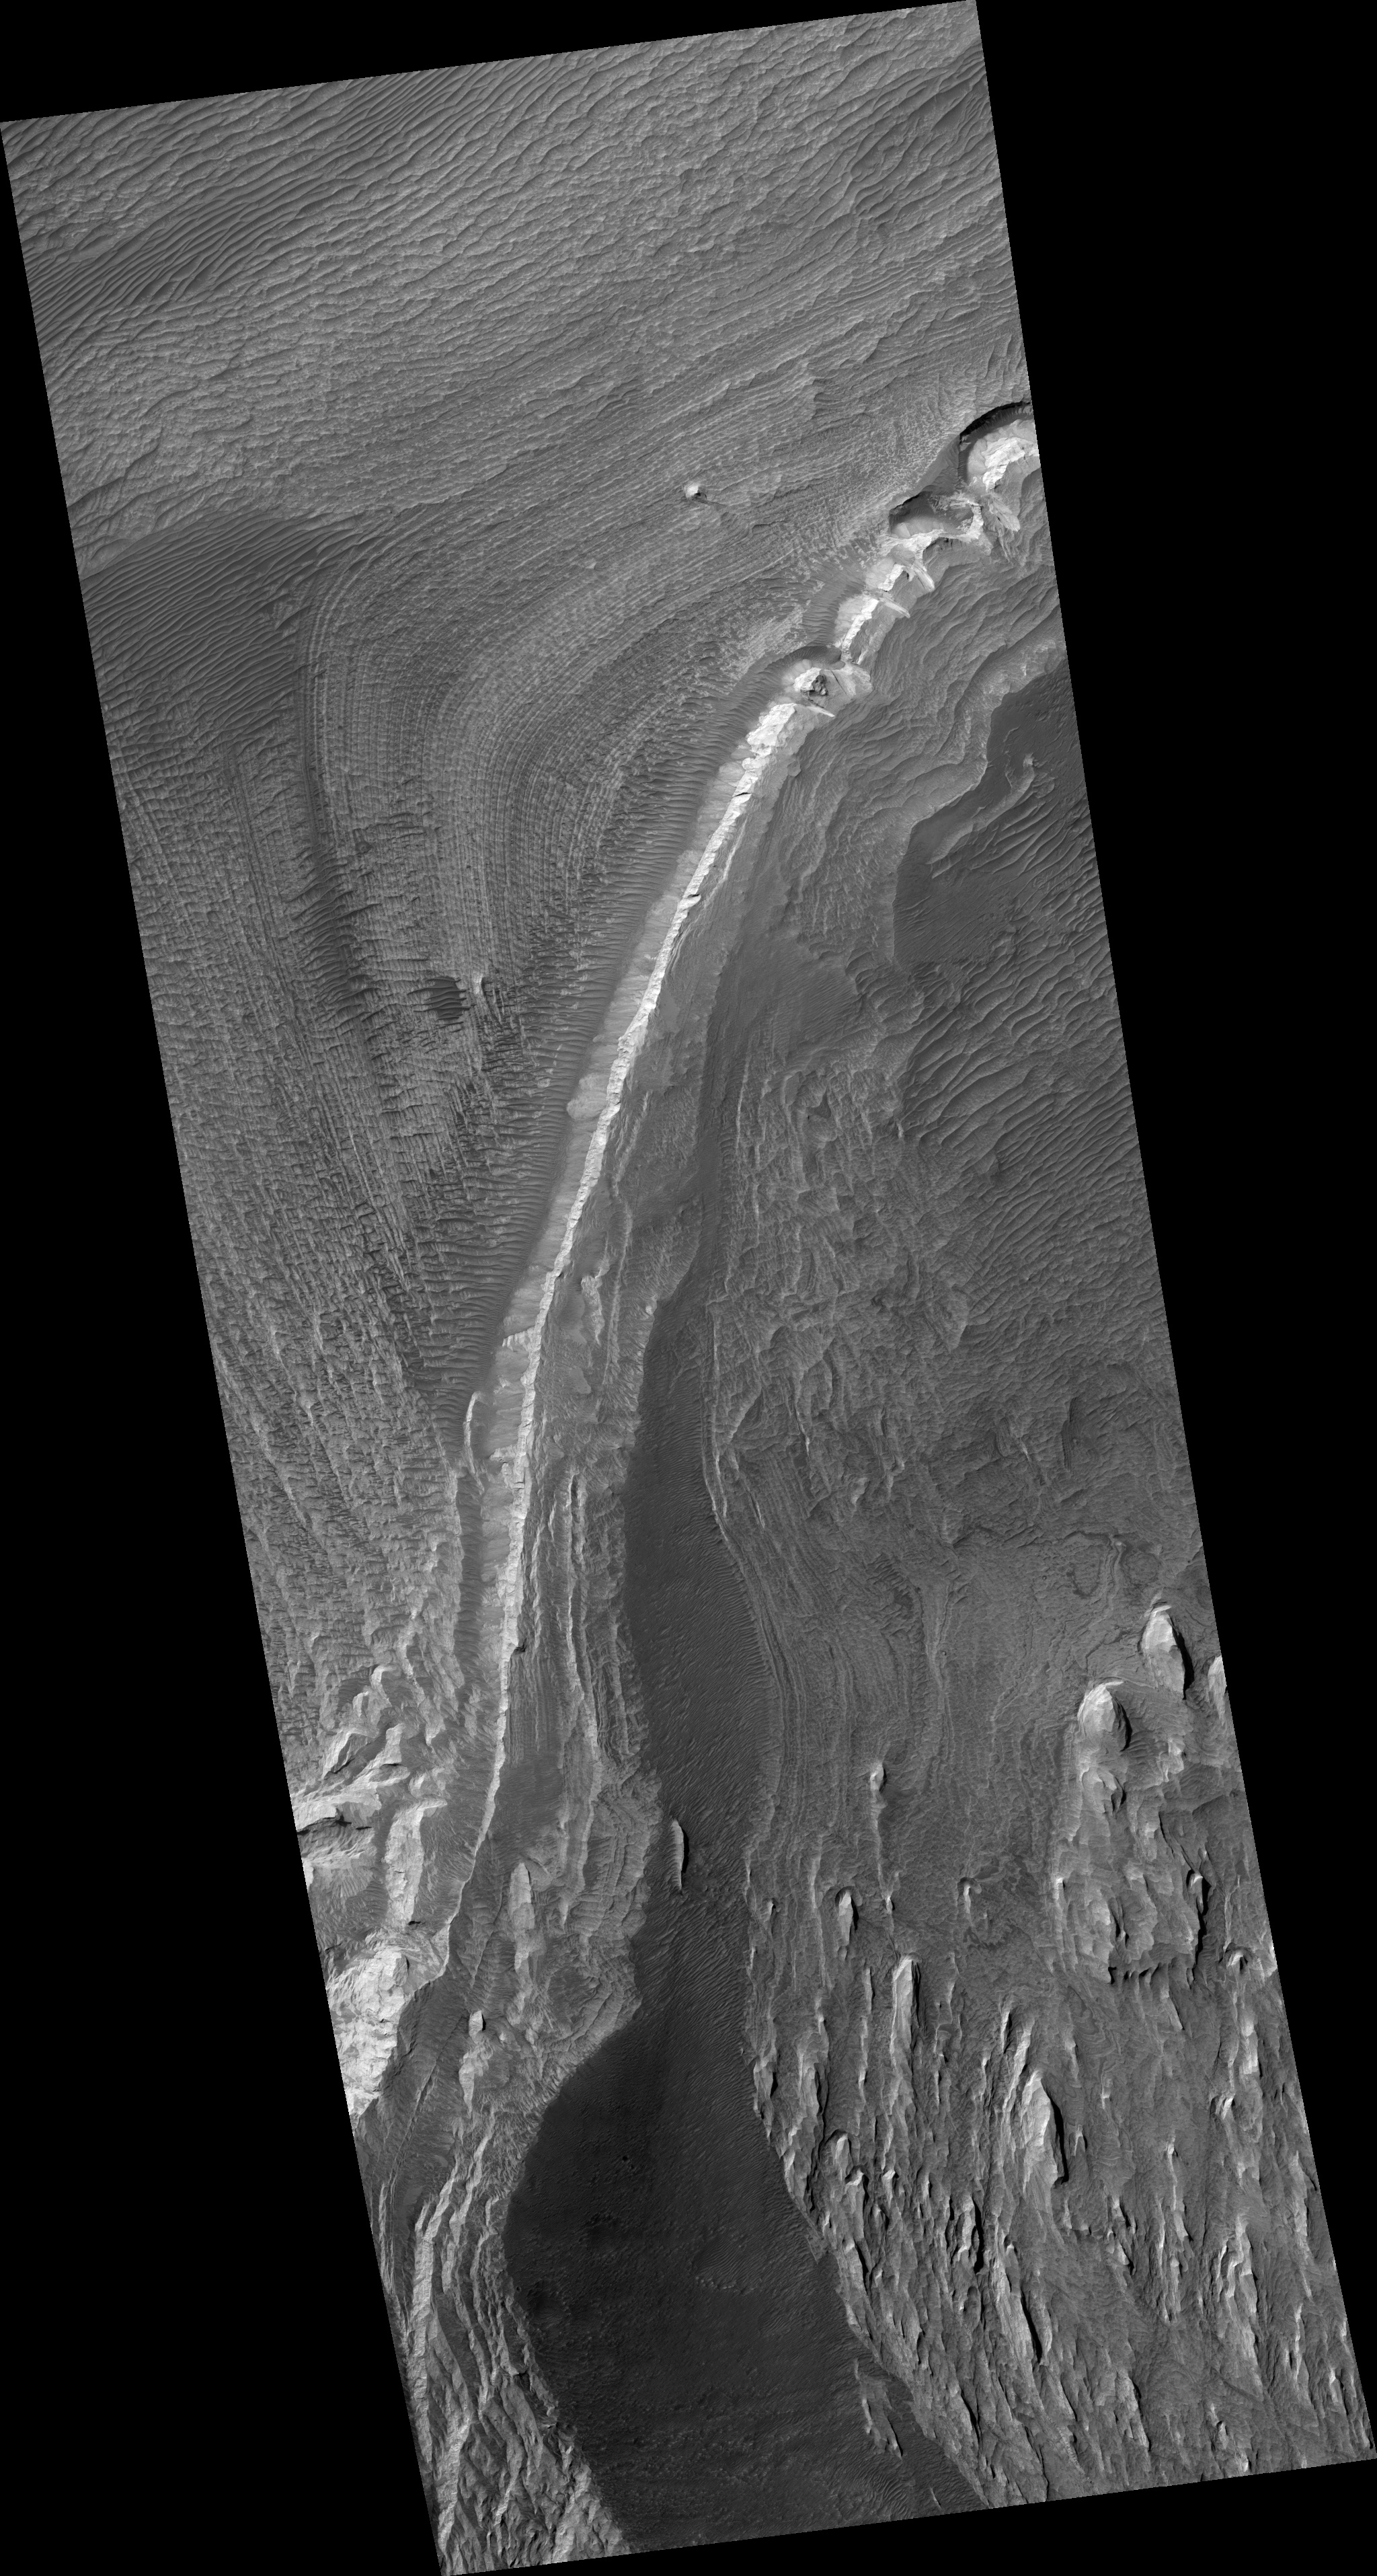 A stereoscopic image of Mars. Or half of a stereo image, at least.